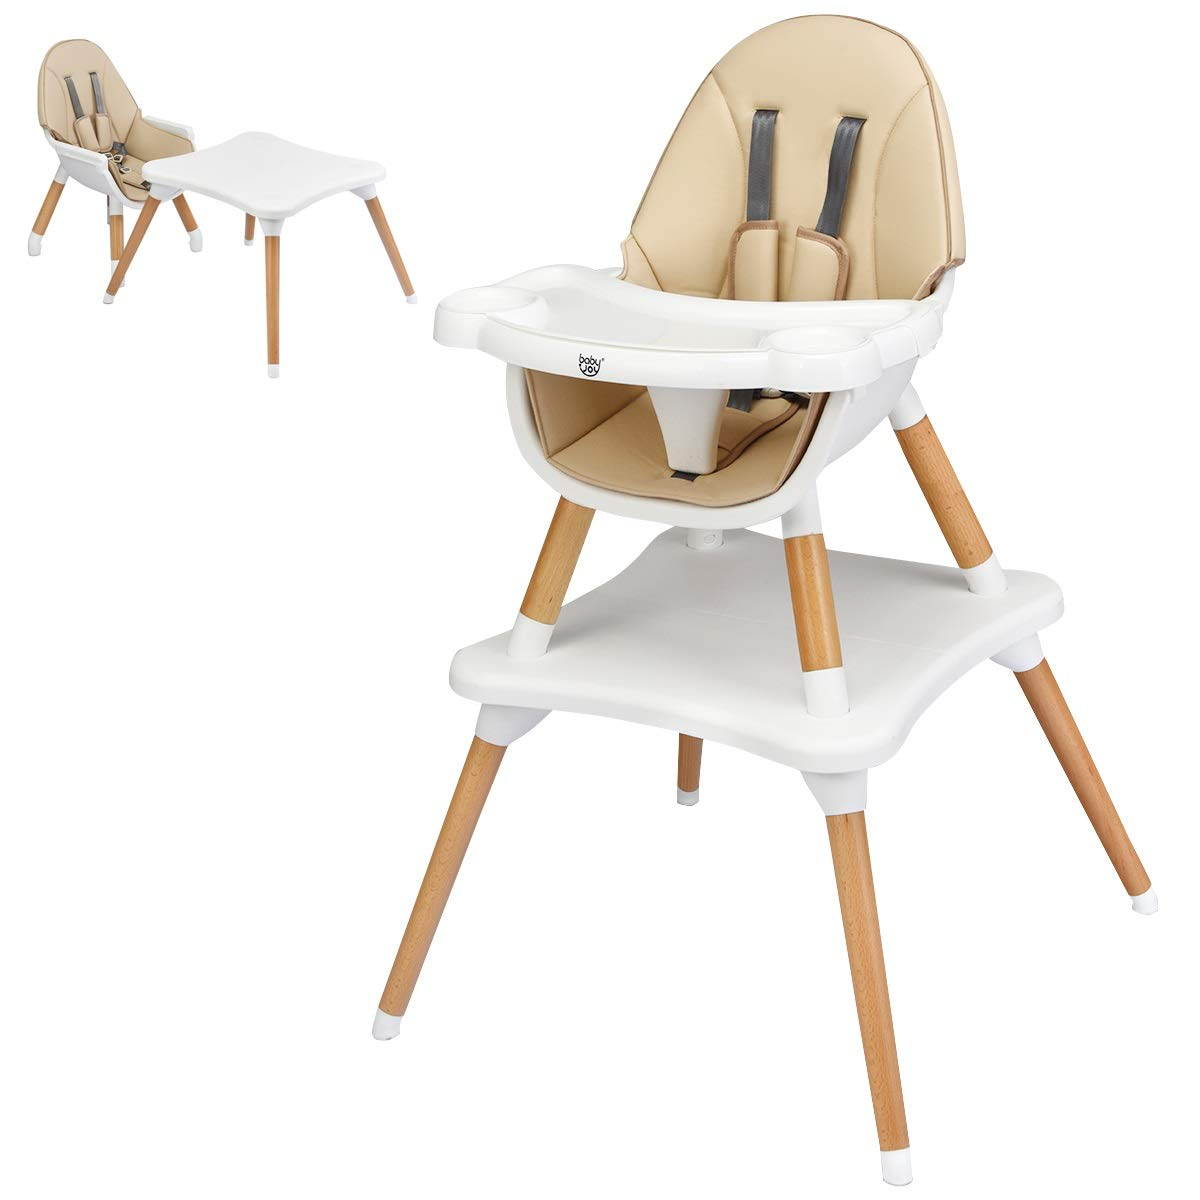 BABY JOY 5 in 1 High Chair, Baby Eat & Grow Convertible High Chair/Booster Seat/Toddler Chair & Table, Infant Wooden Dining Chairs w/5-Point Seat Belt, Removable 4-Position Tray & PU Cushion (Khaki)